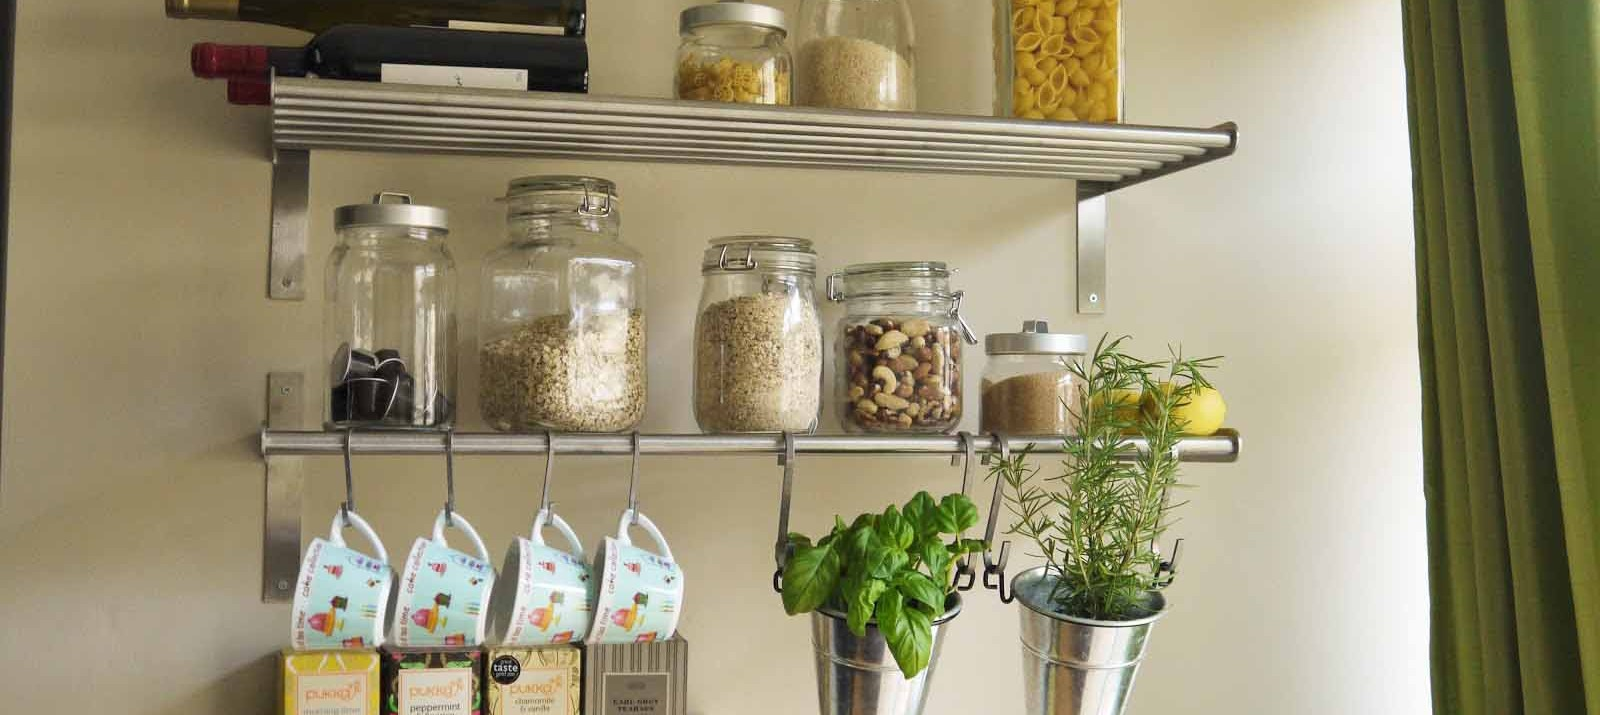 space saving storage ideas for kitchen 7 smart ways to save a ton of space in your small kitchen UWDPVLE